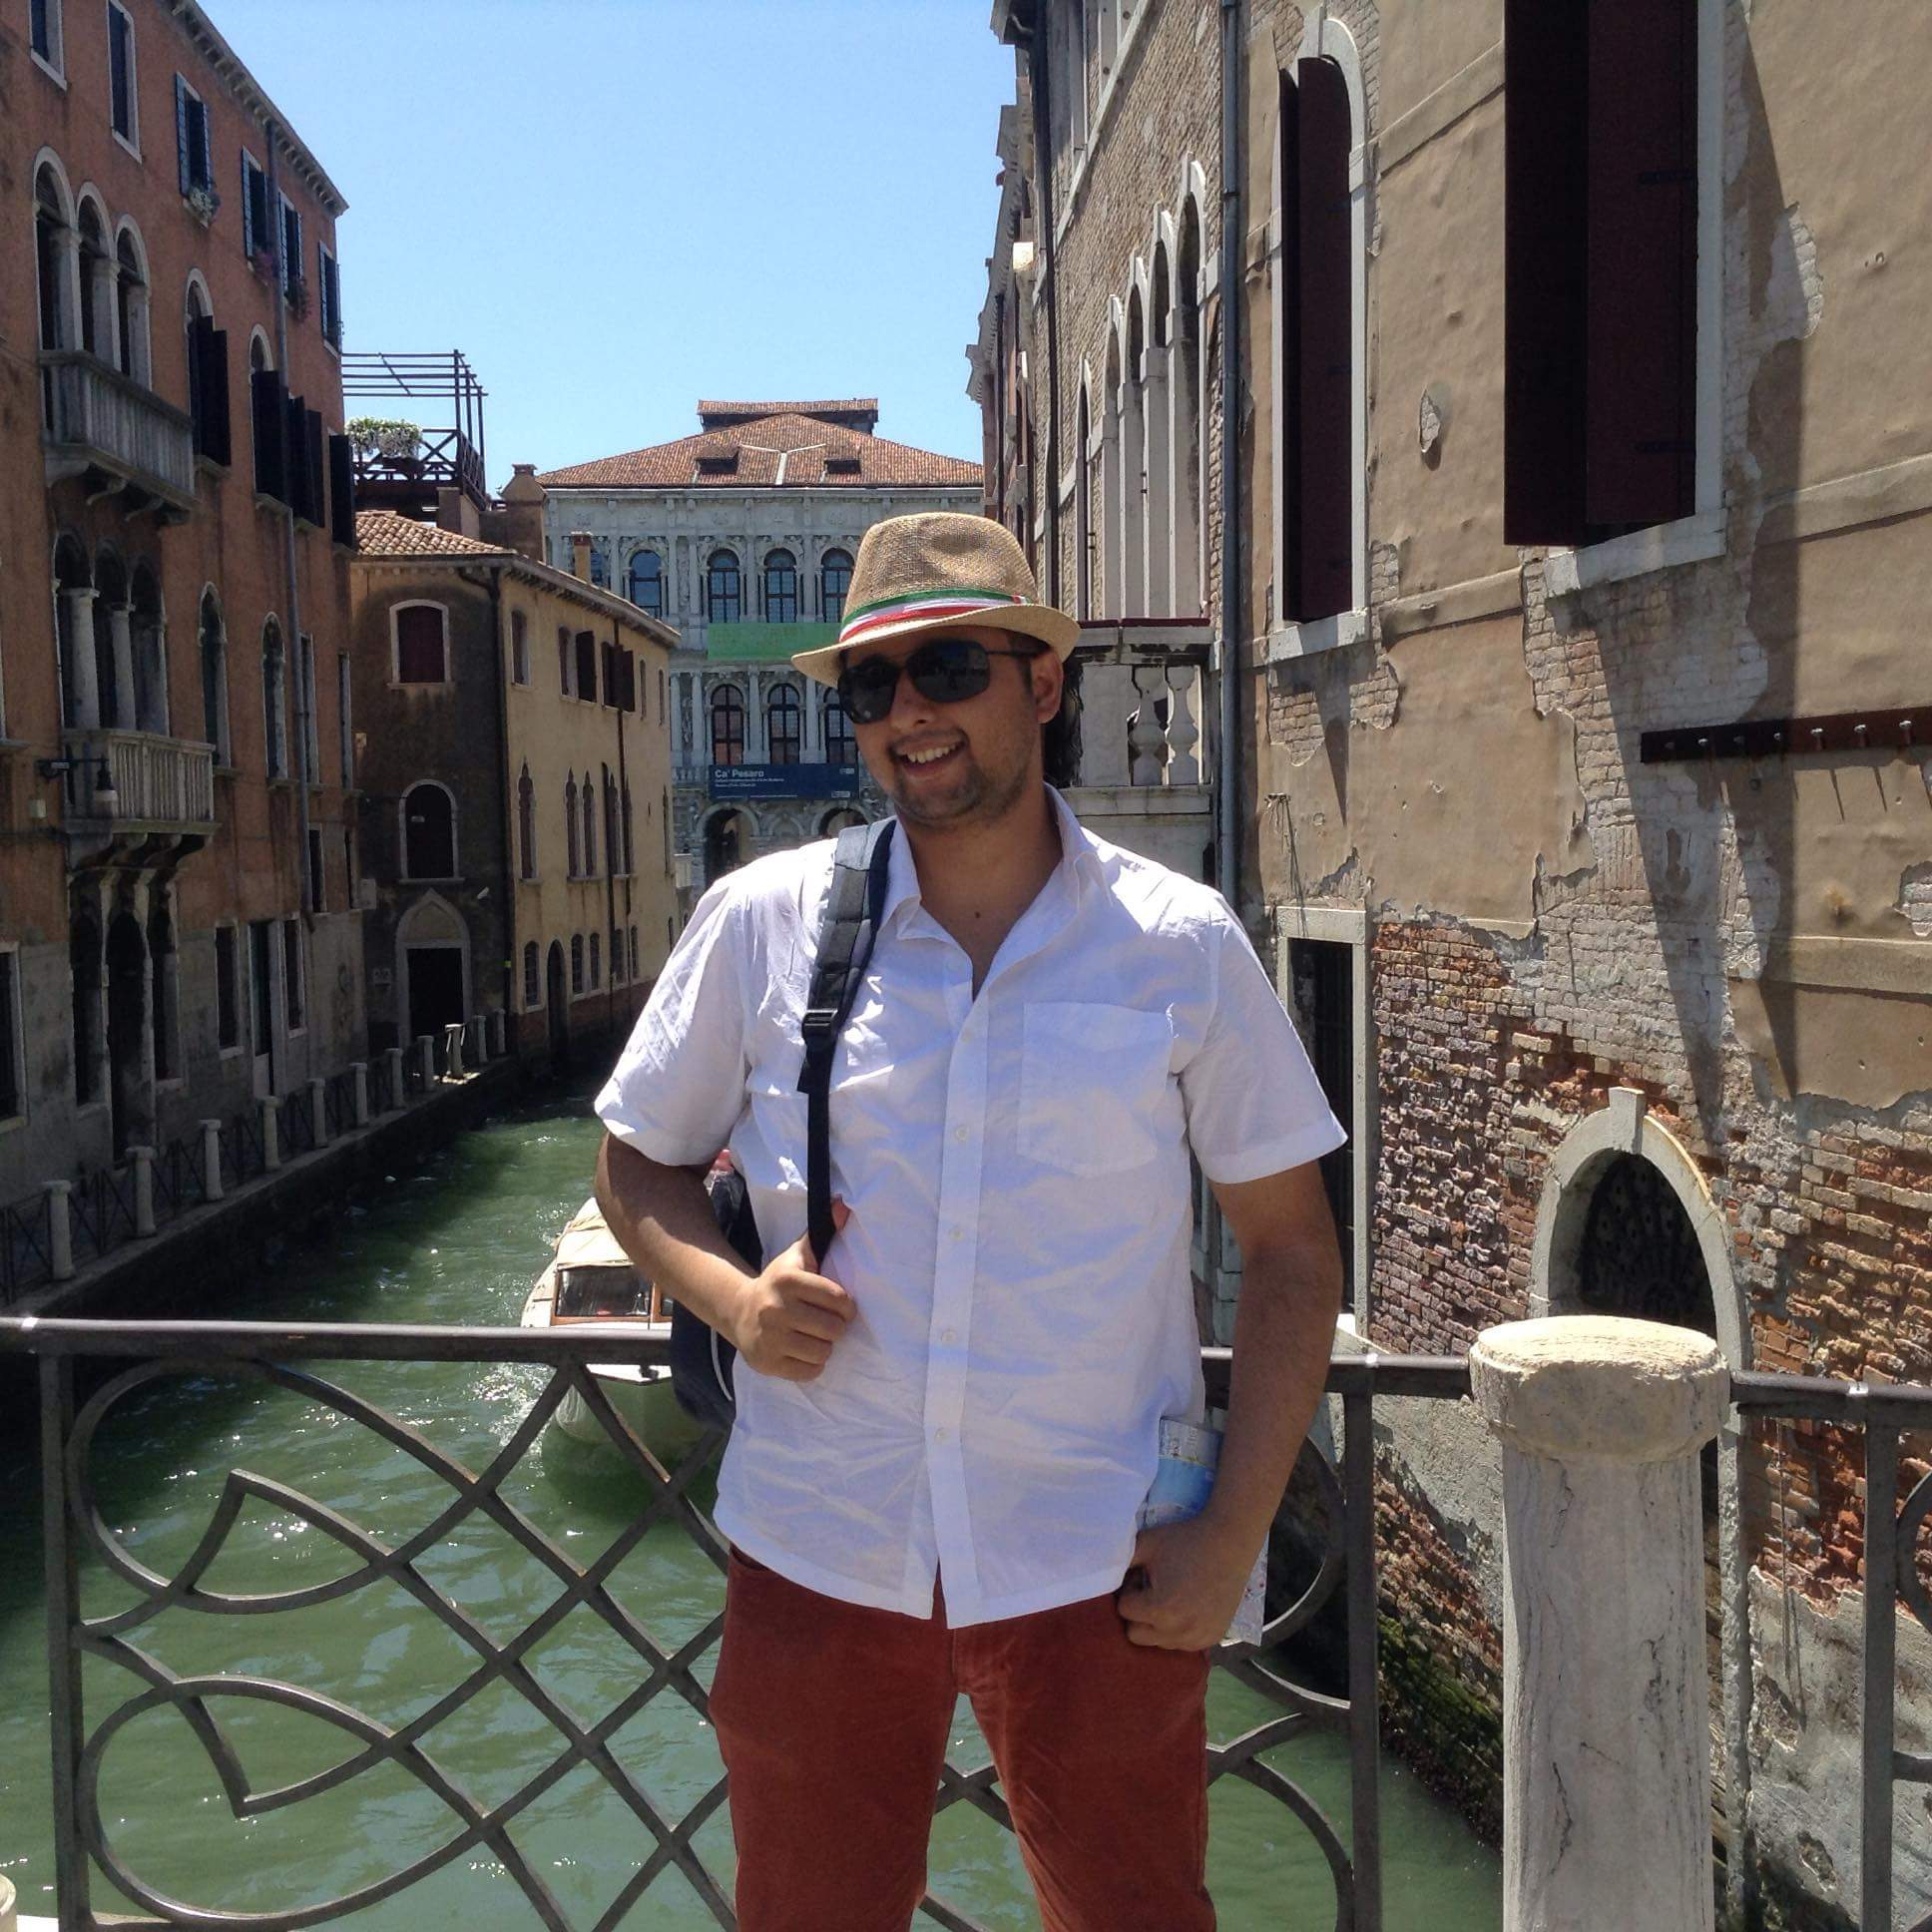 Venice: Why the season is important for European travel